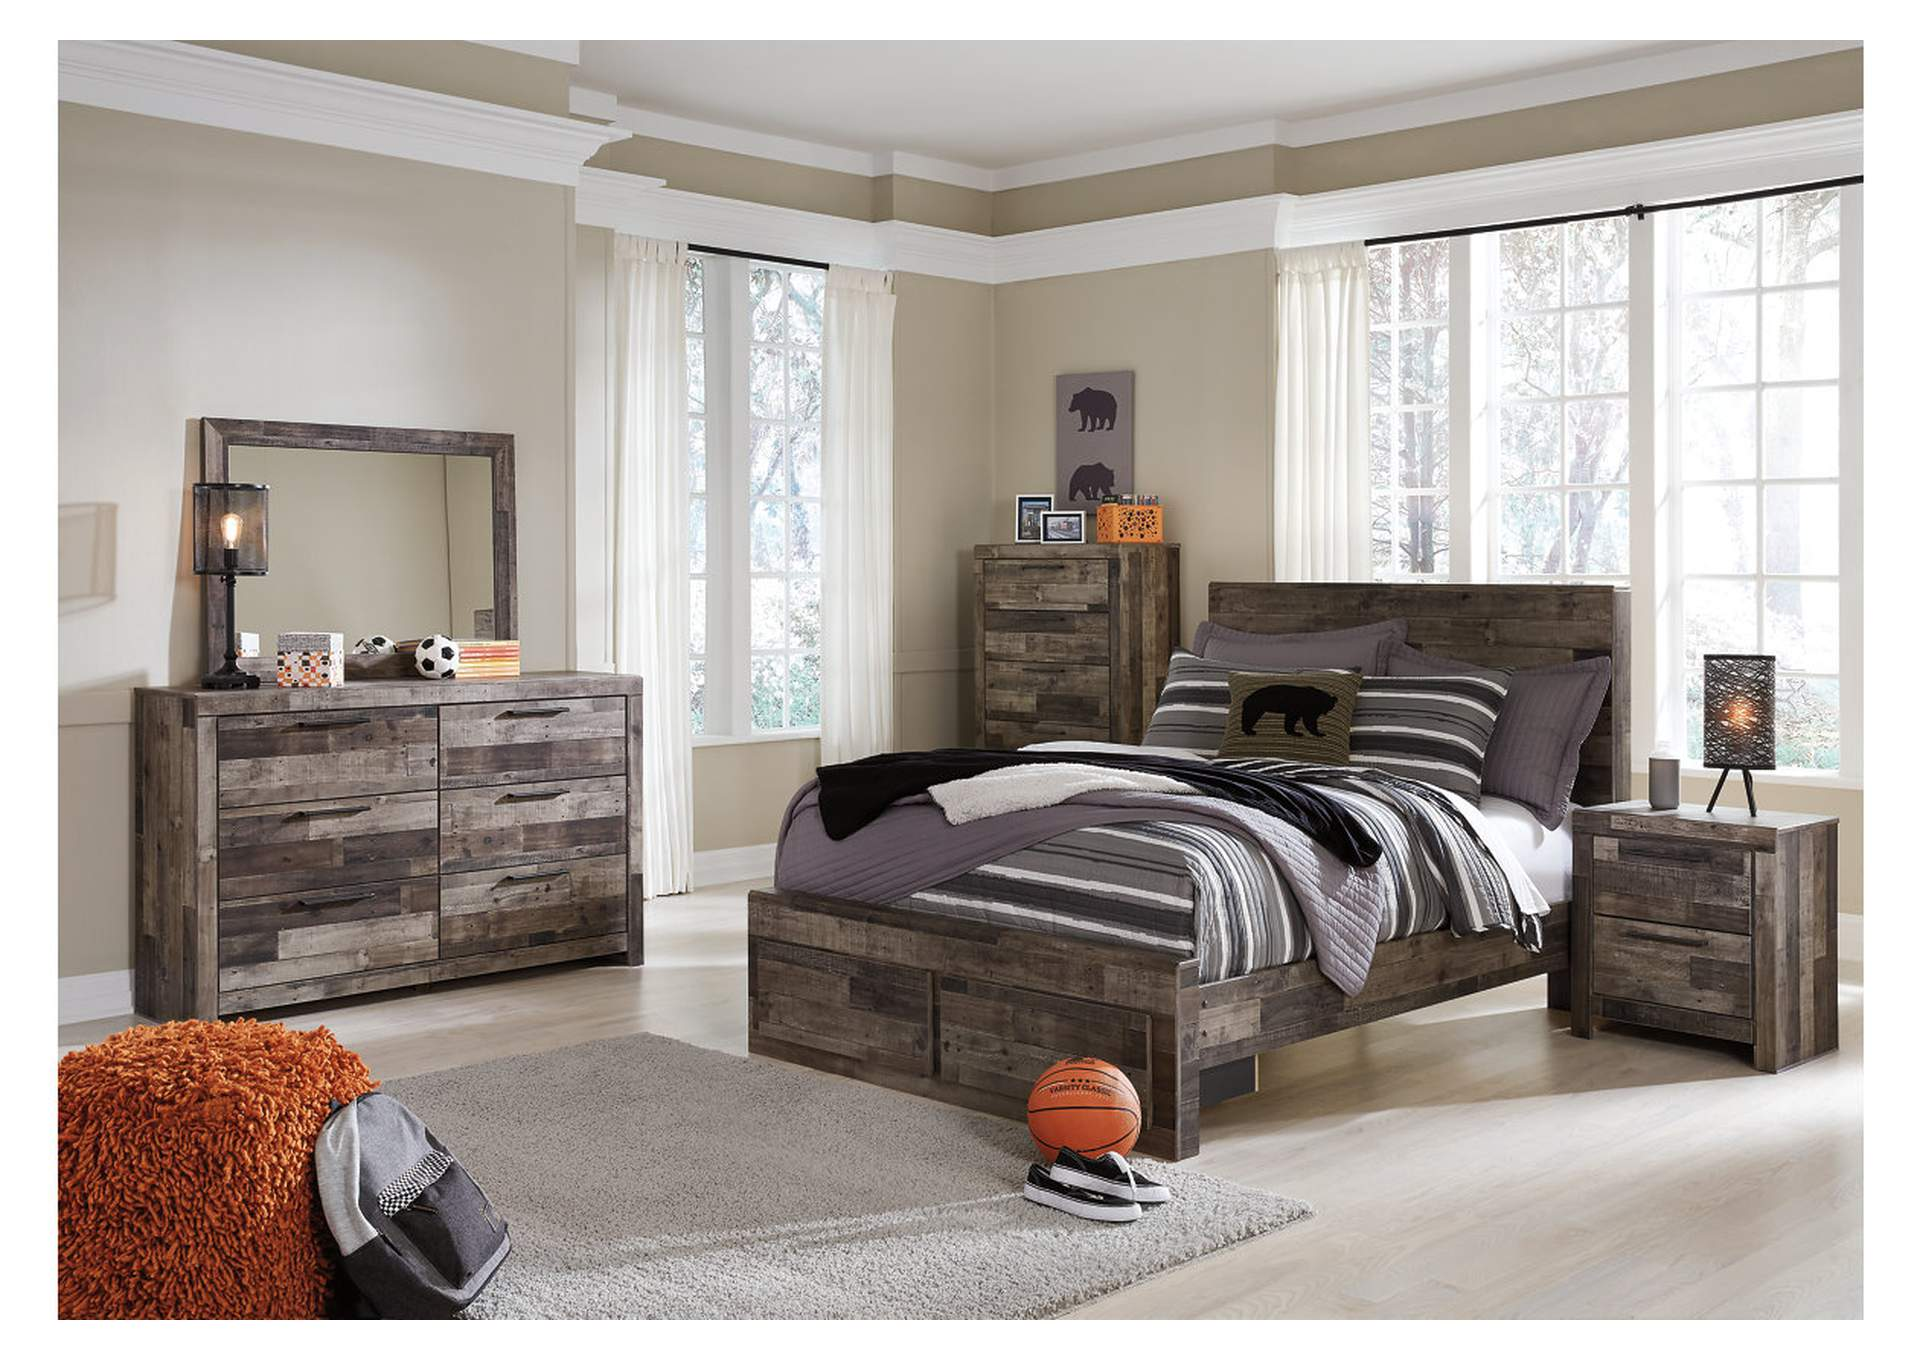 Derekson Full Platform Bed w/Dresser and Mirror,Benchcraft